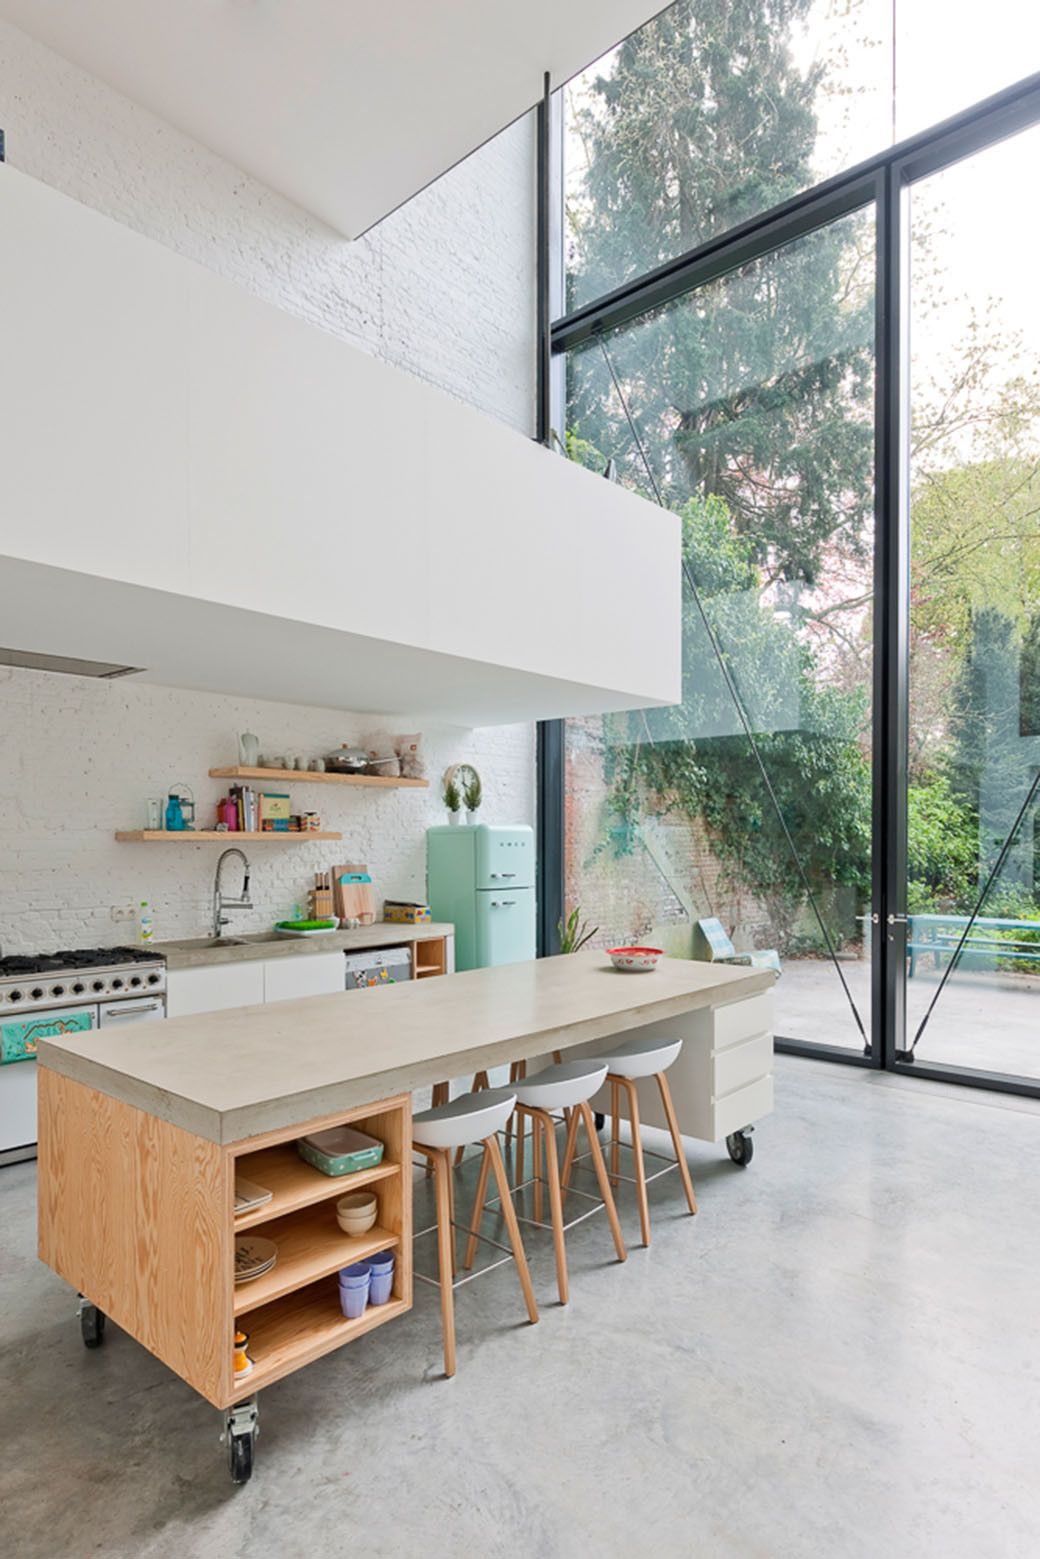 Town House in Antwerp Kitchen with floor to ceiling walls